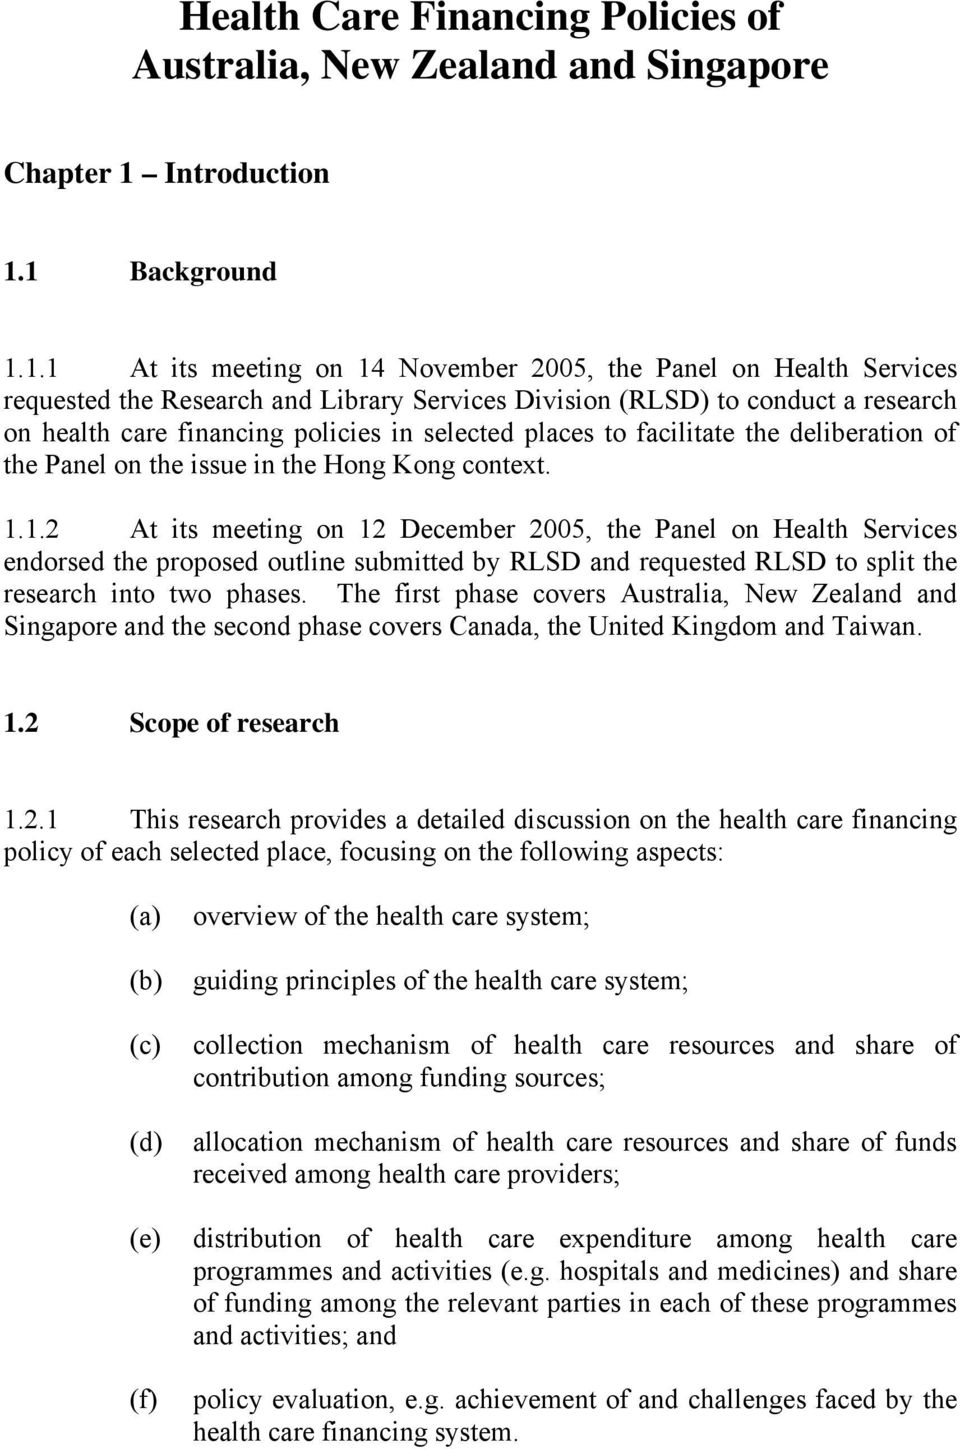 1 Background 1.1.1 At its meeting on 14 November 2005, the Panel on Health Services requested the Research and Library Services Division (RLSD) to conduct a research on health care financing policies